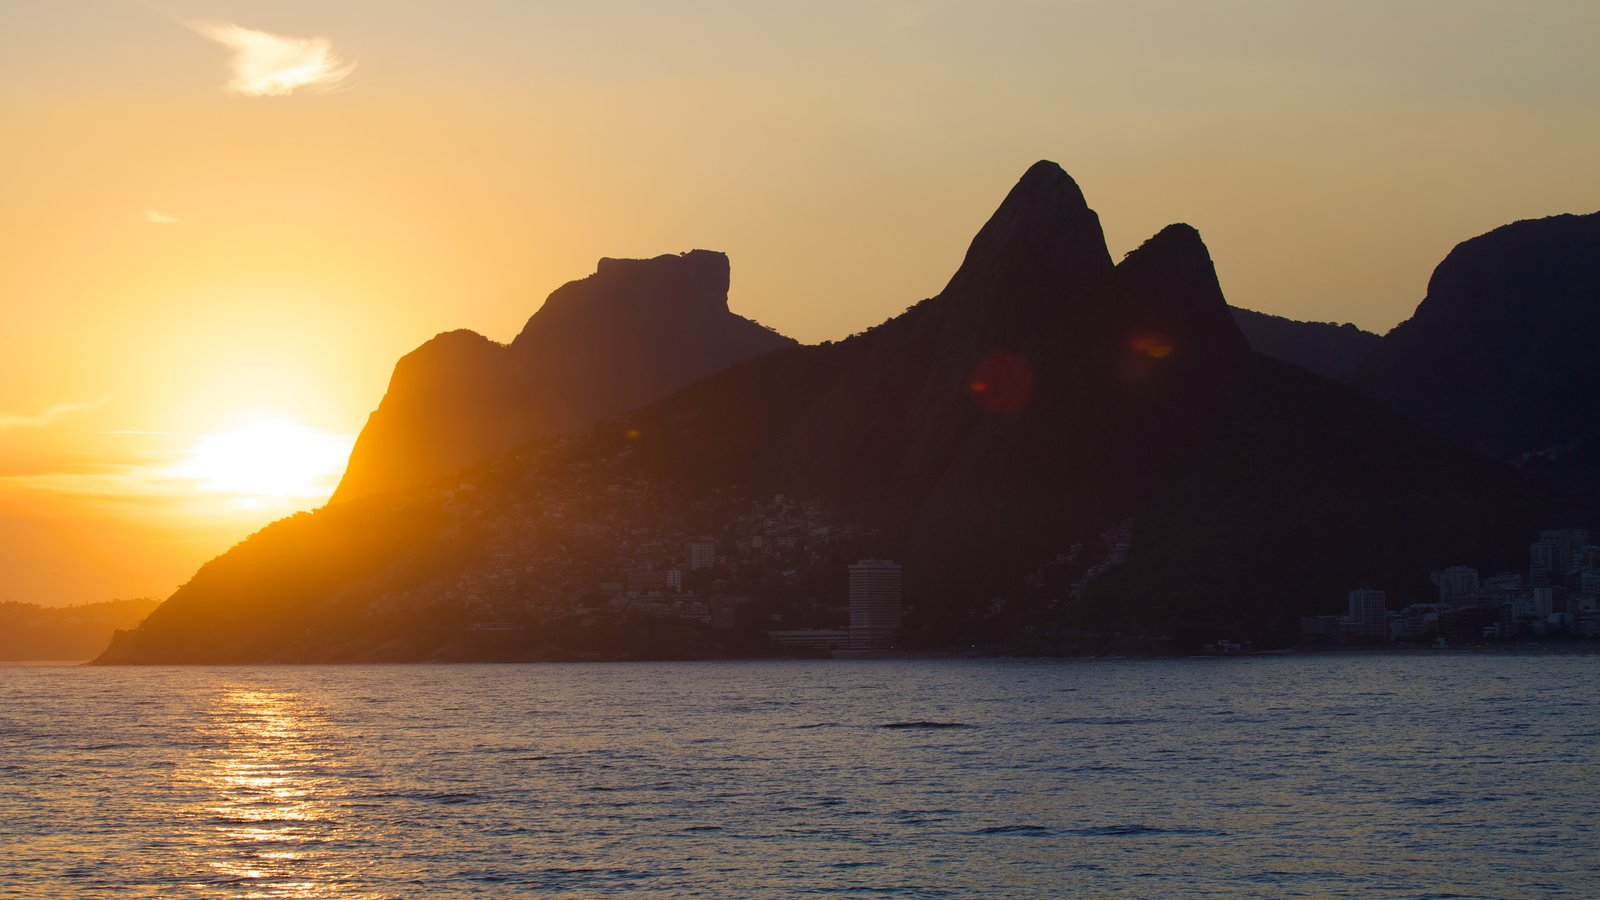 Brazil featuring general coastal views, a sunset and mountains